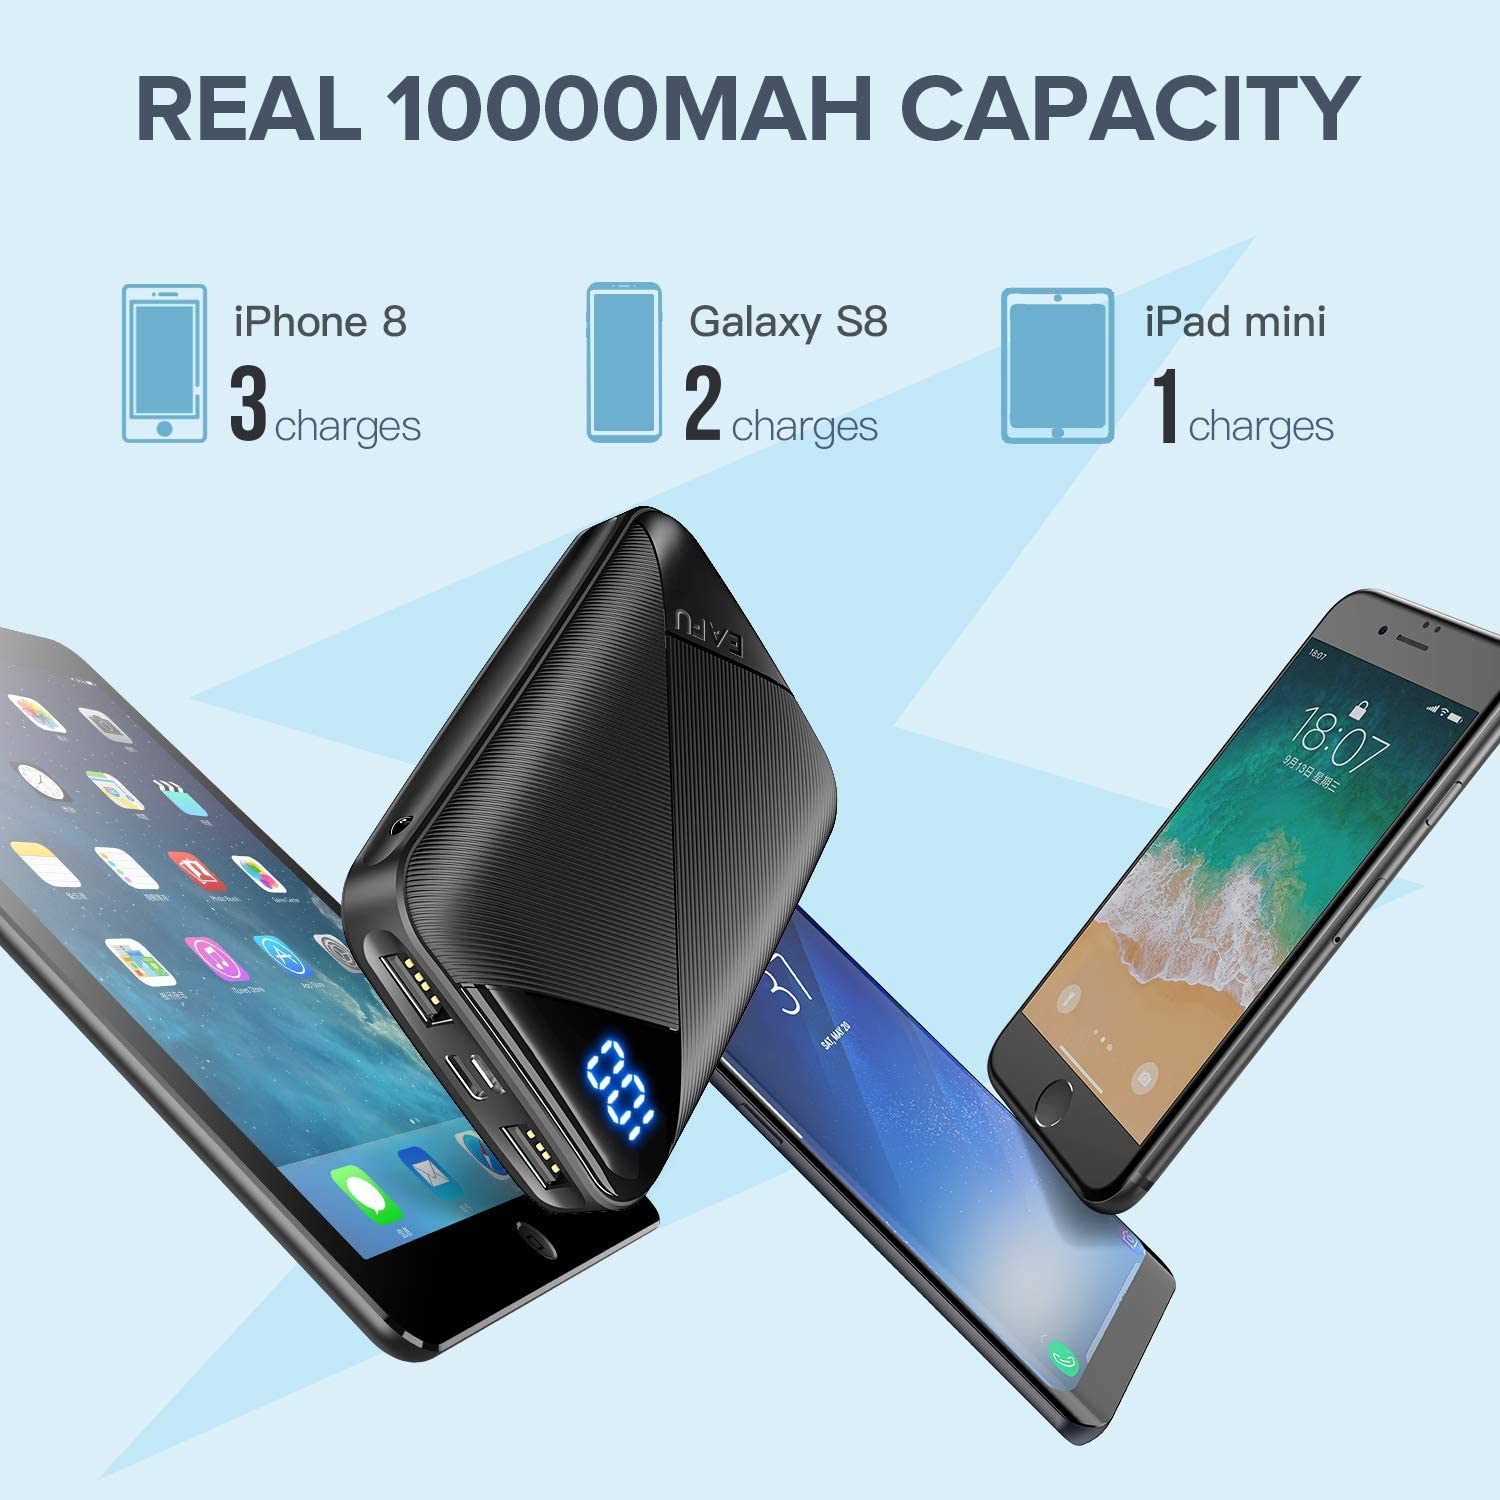 LED Display 10000mAh Portable Charger with Type C /& Micro USB Input EAFU Power Bank Dual 3A High-Speed Output Battery Pack with Flashlight Compatible with iPhone Xs X 8 Samsung Galaxy S10 iPad etc.